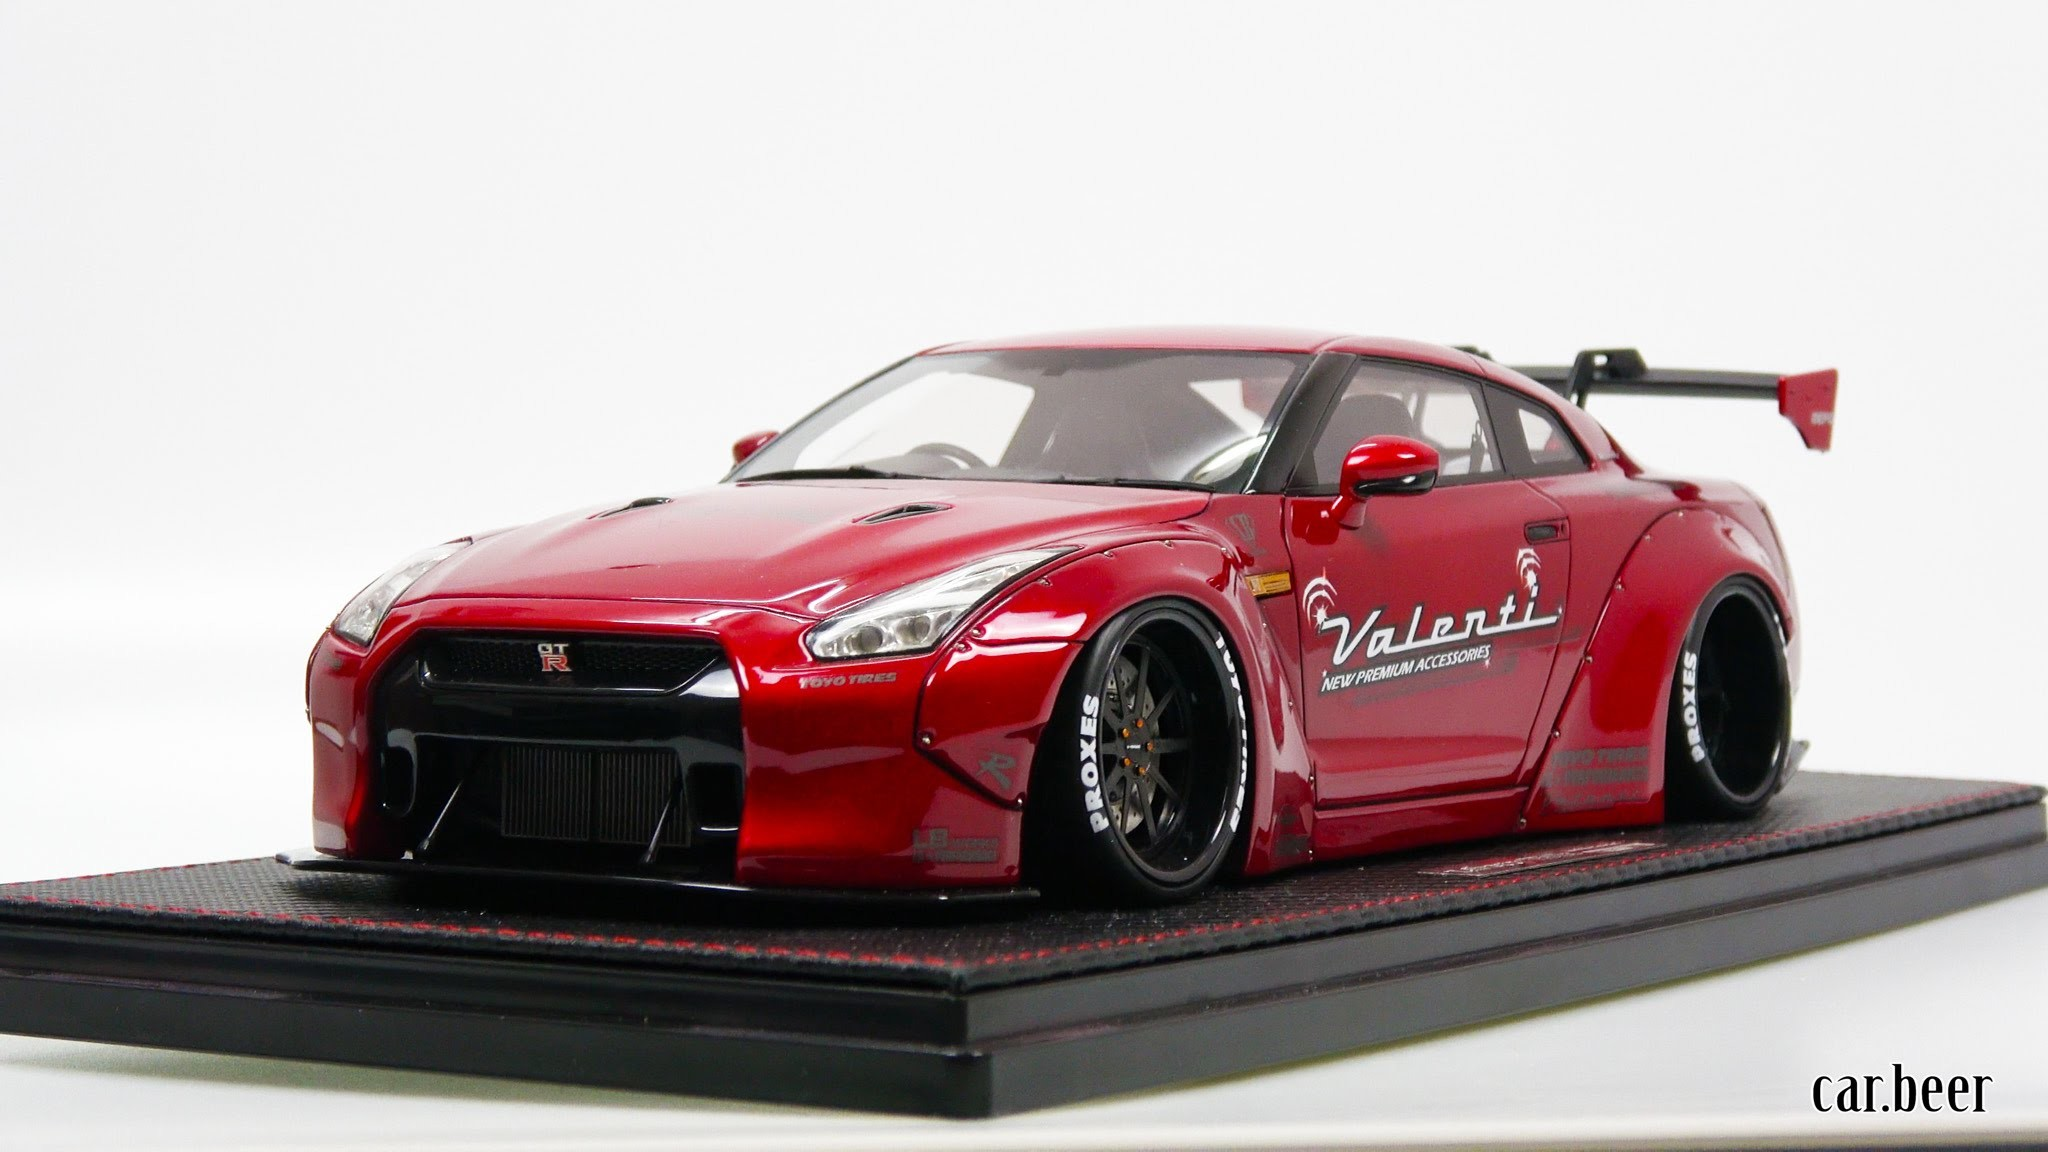 1/18 Ignition Model Liberty Walk LB-Works Nissan GT-R (R35) Red review – 4K  video